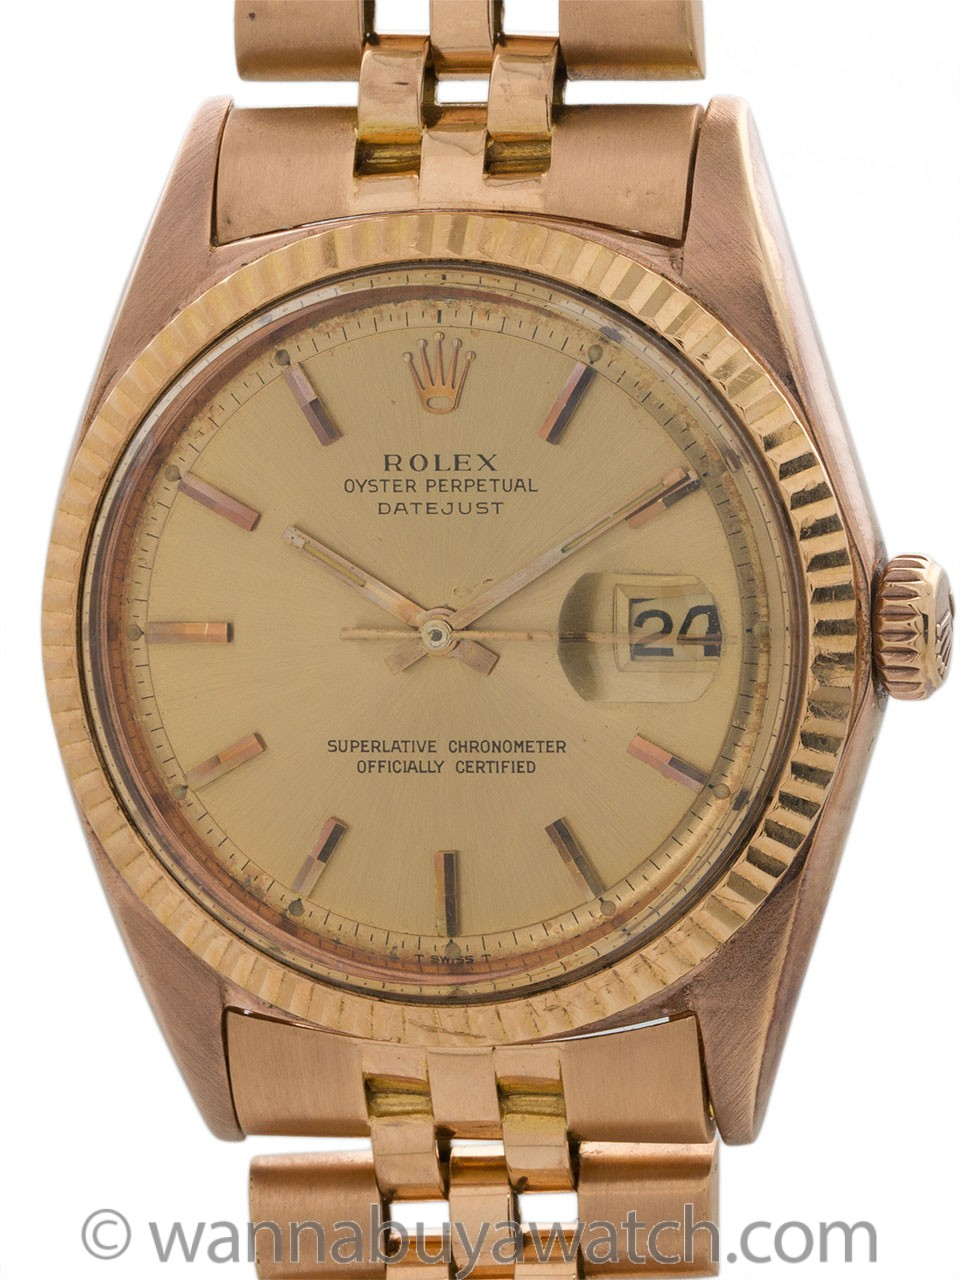 Rolex 18K Rose Gold Datejust ref 1601 circa 1970's